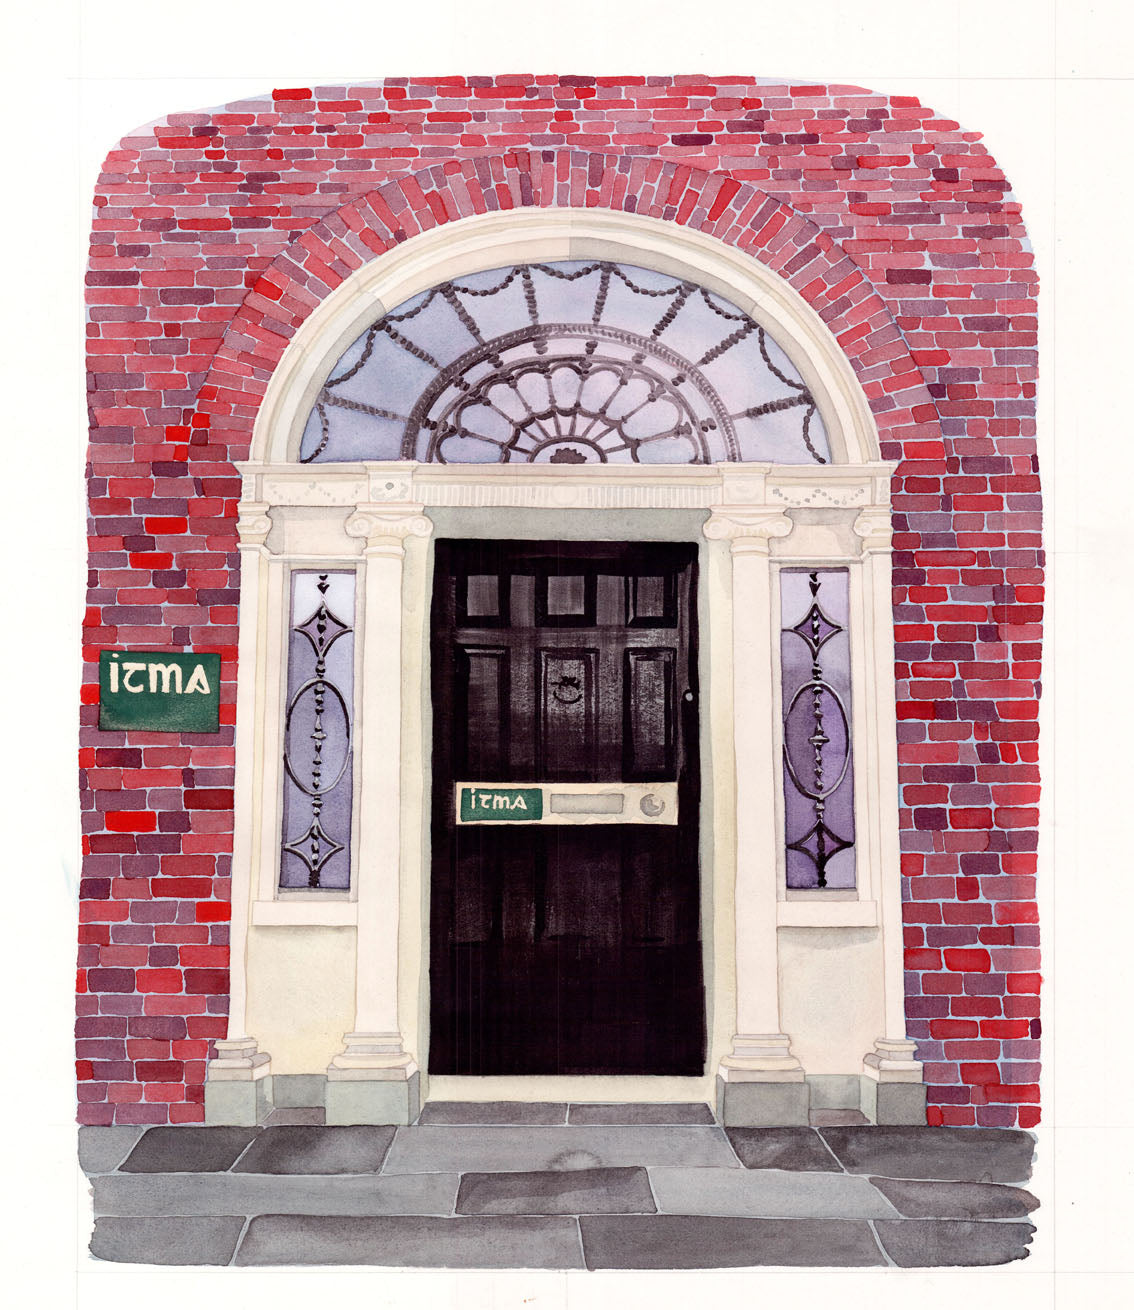 ITMA Greeting Cards - Artwork by Sinéad Kennedy